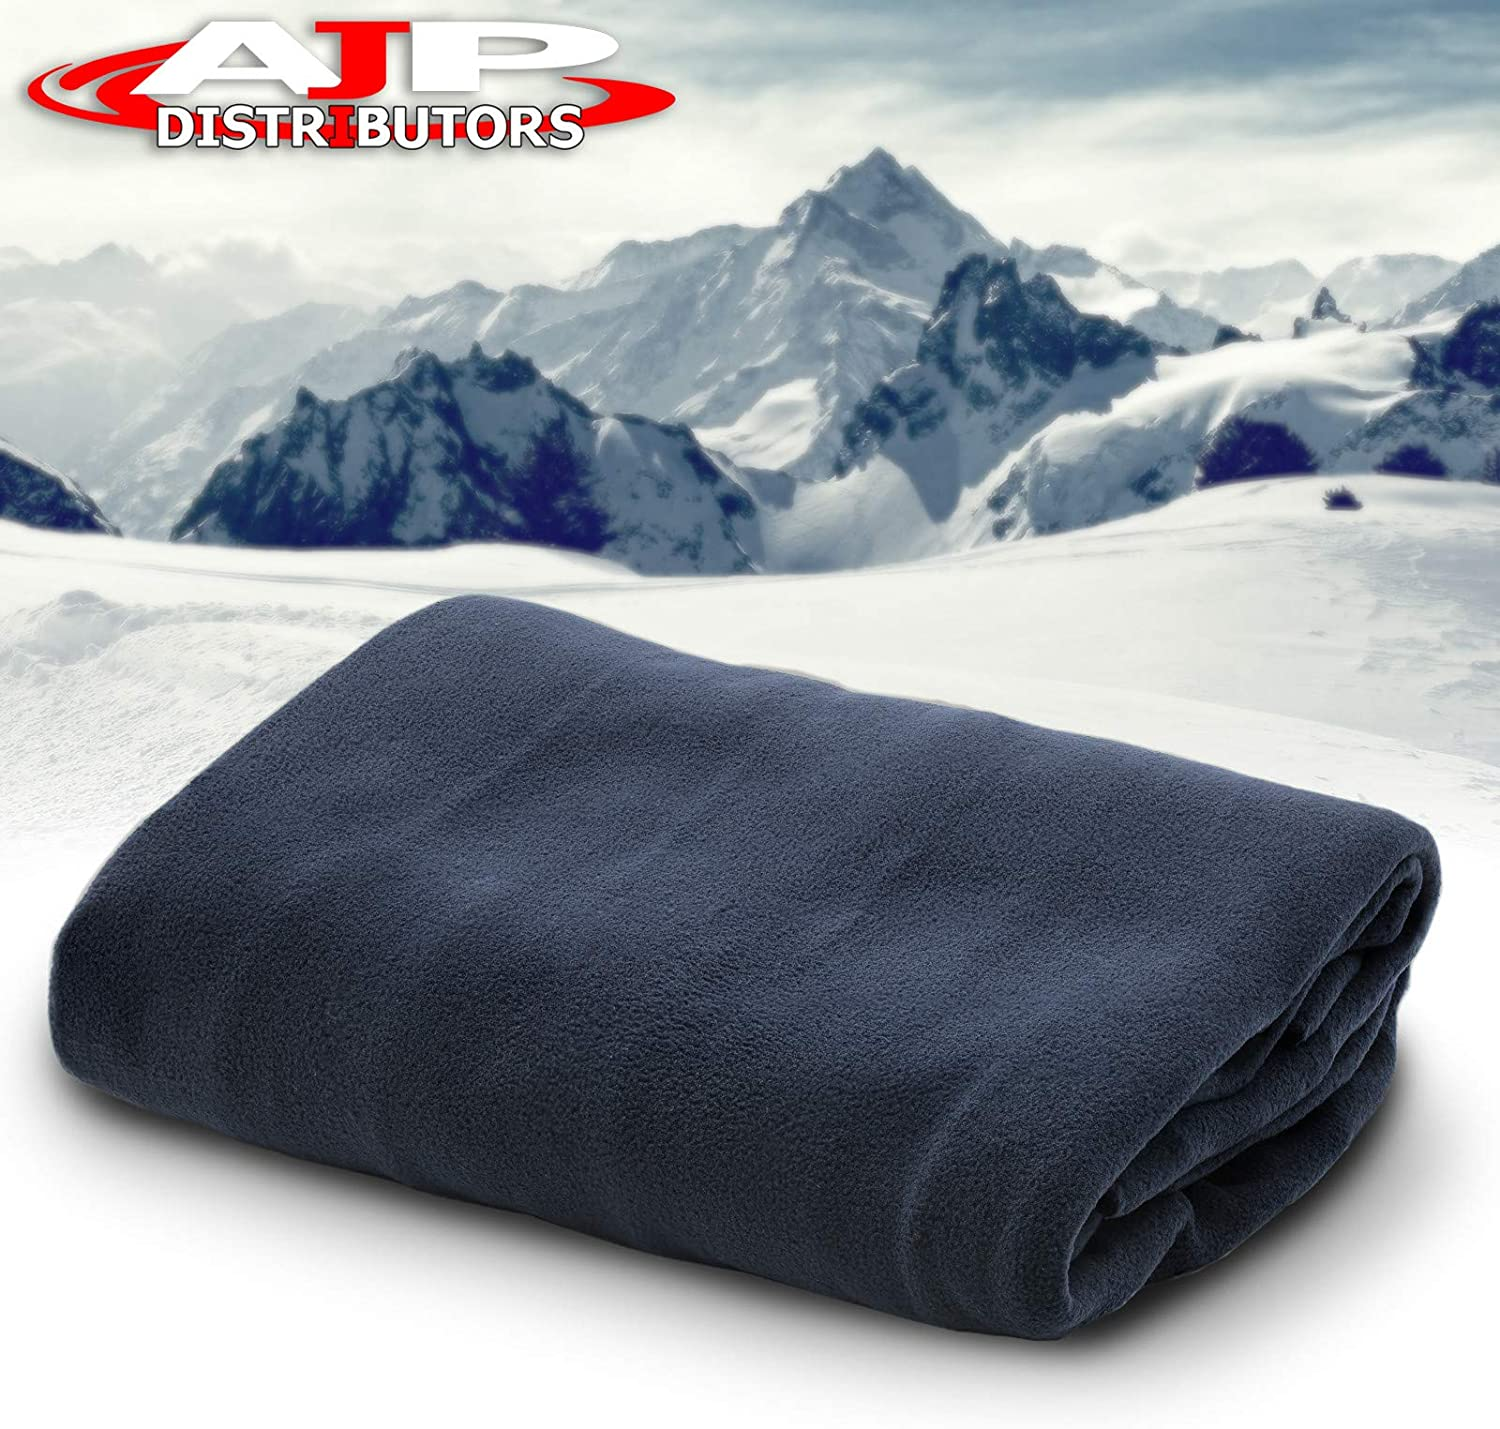 Anti-Flammable Material AJP Distributors 12V Car Truck Heated Blanket Electric Fleece Travel Heating Seat Blanket Throw Automotive Vehicle Road Travel Trip RV Soft Polar Fleece Winter Cold Weather